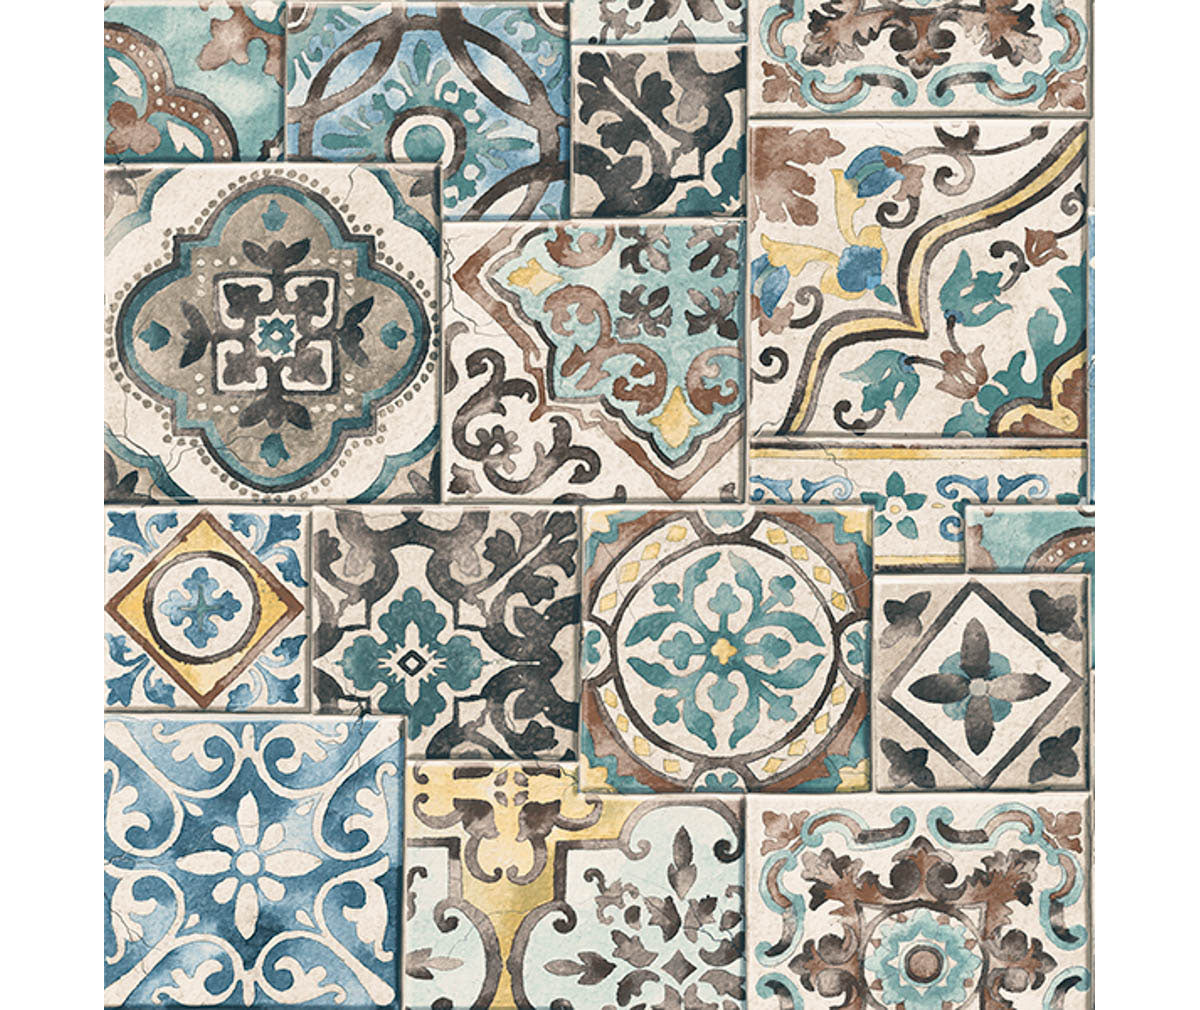 Marrakesh Tiles Teal Mosaic Wallpaper available at Barrydowne Paint